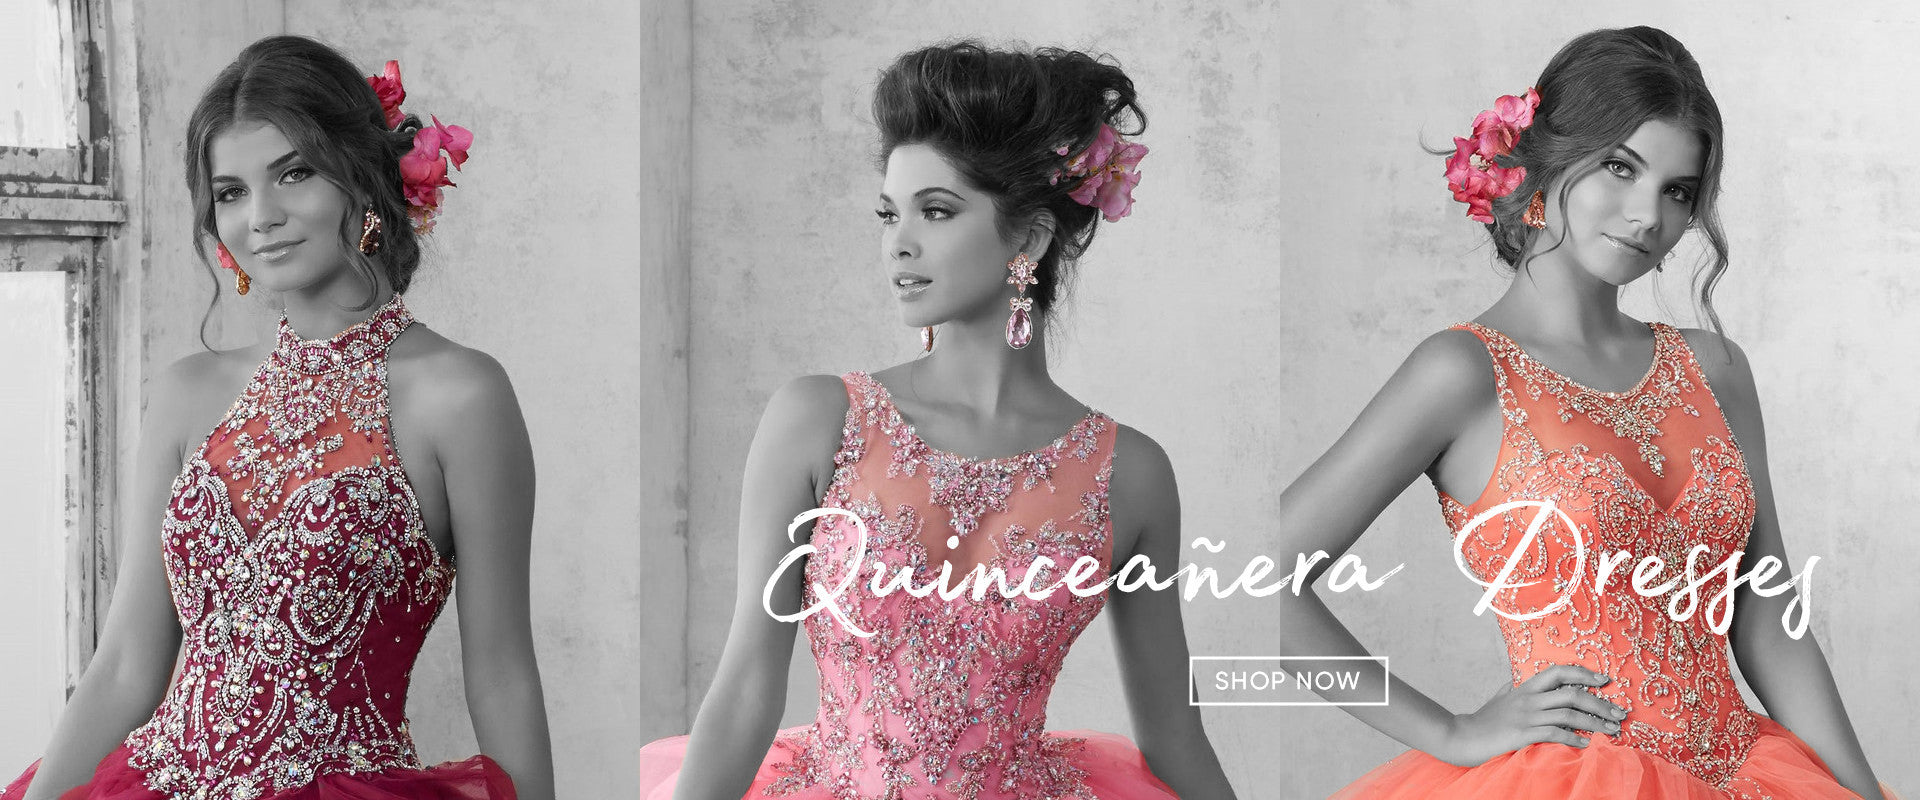 ABC Fashion Quinceanera Dresses Banner